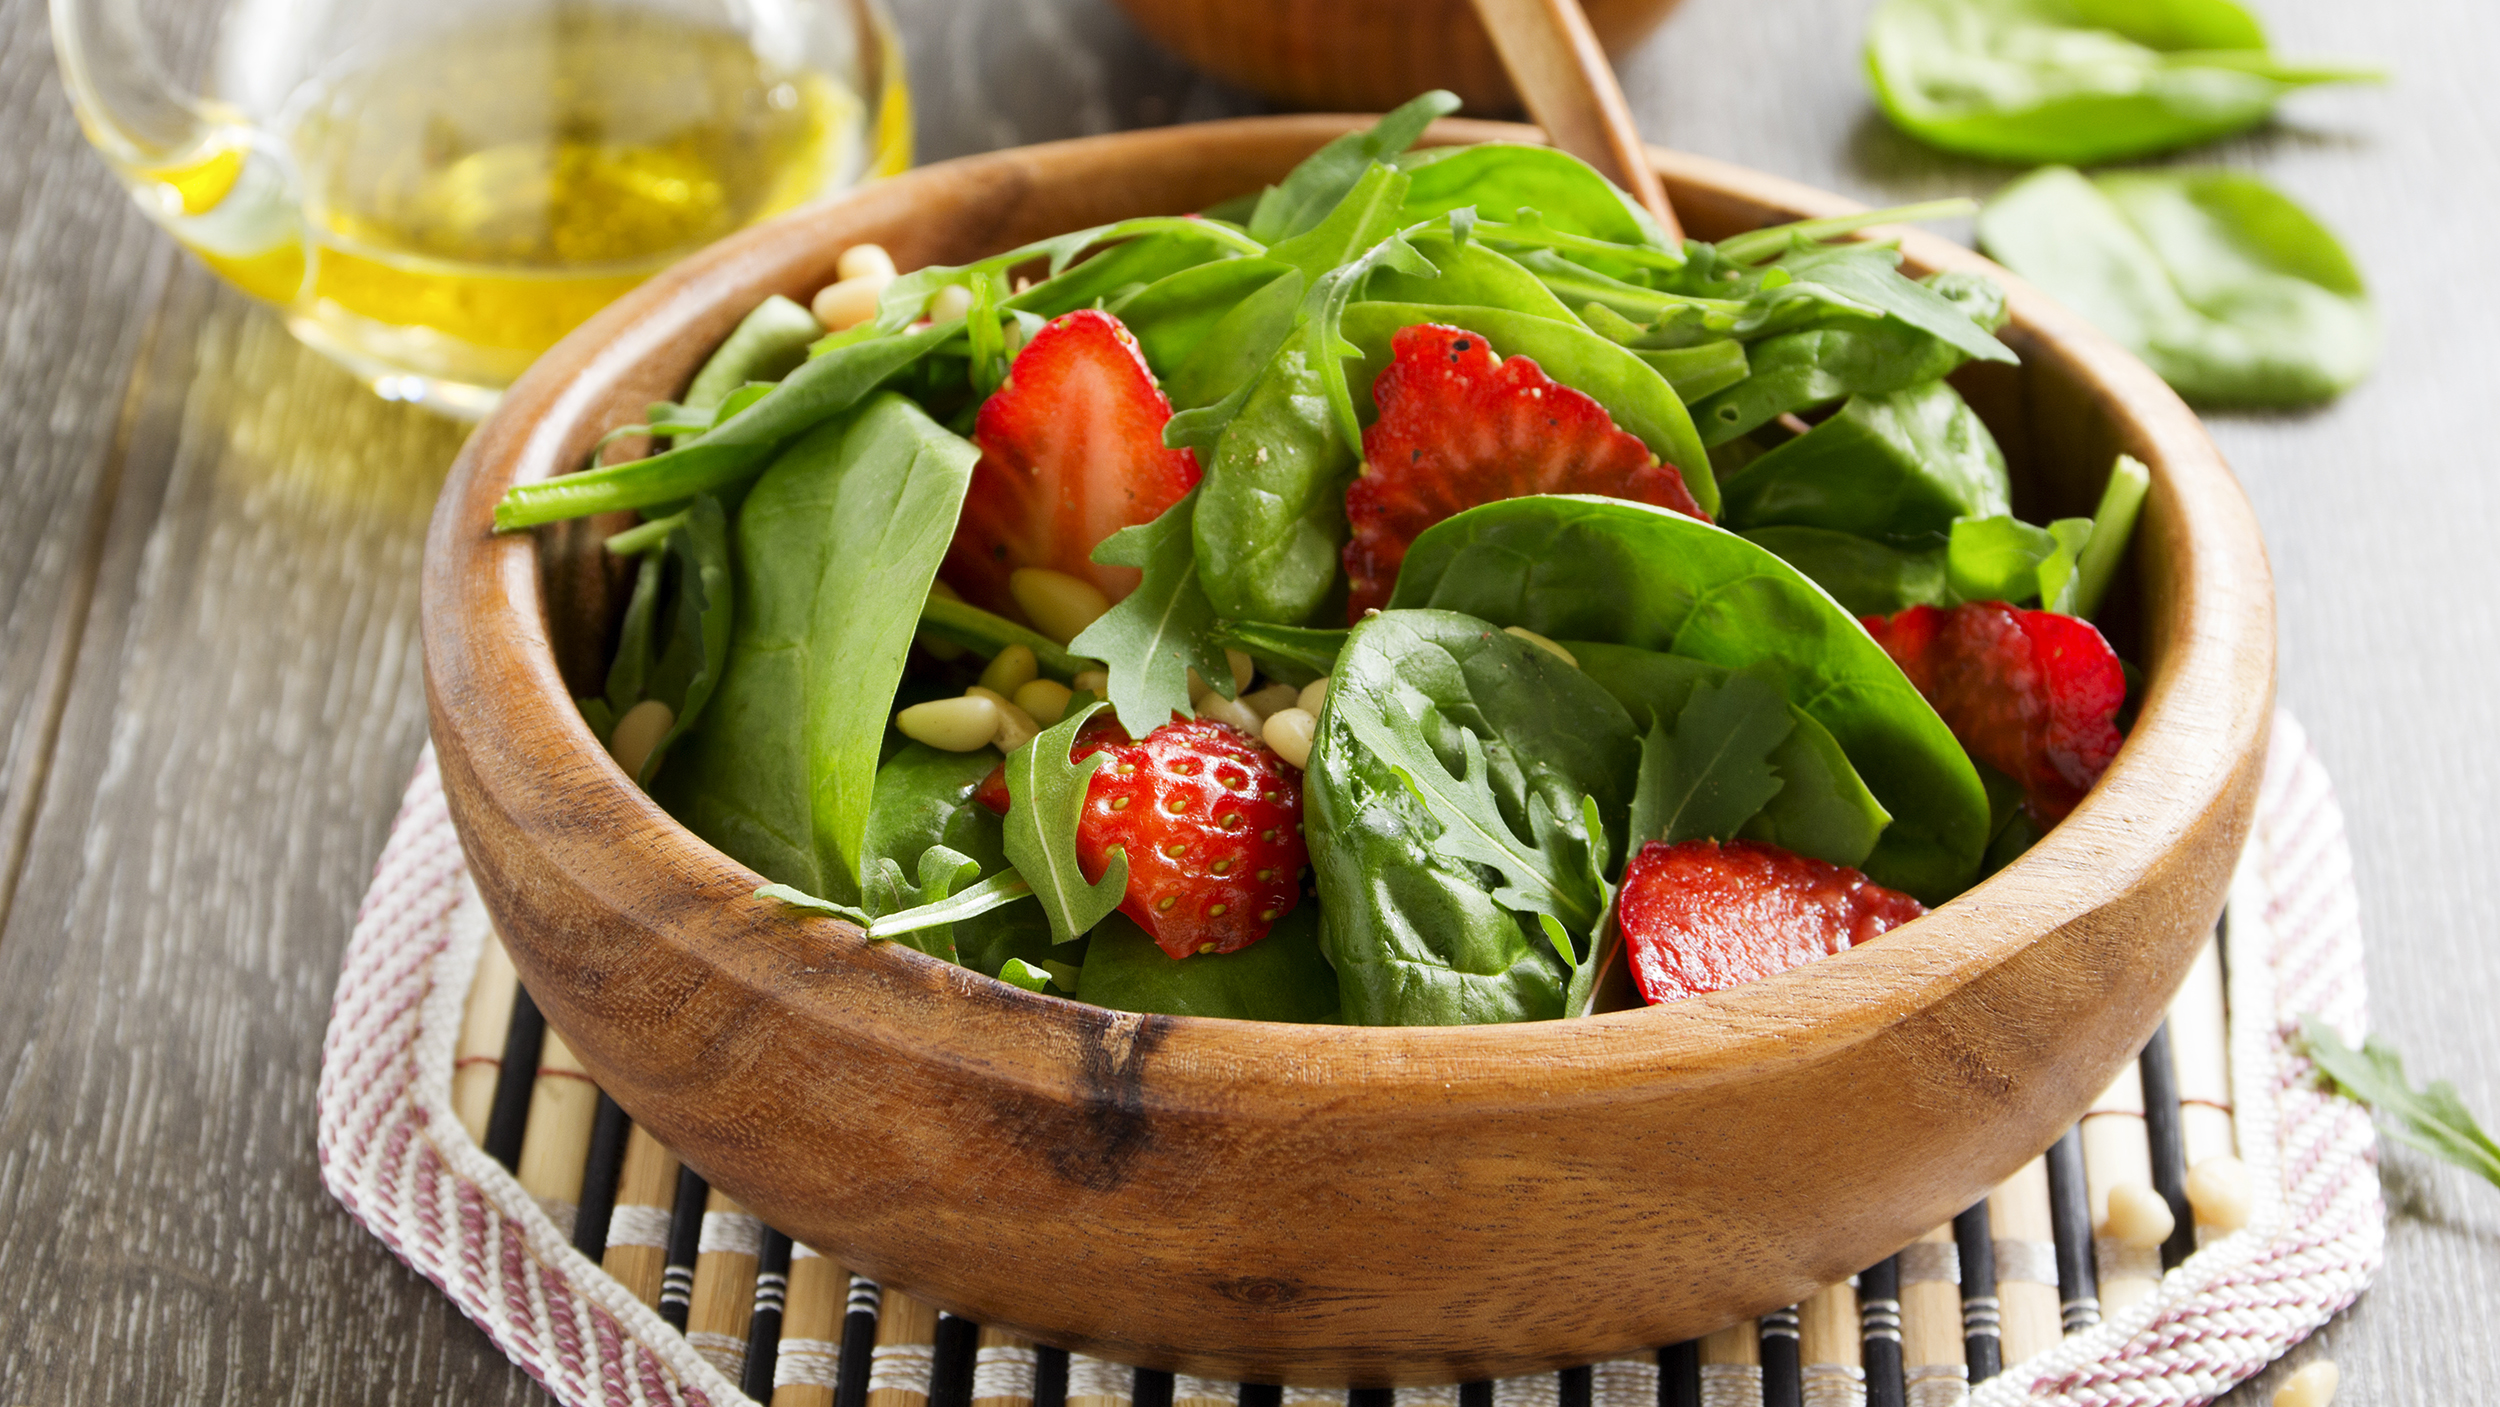 Hypertension: 5 foods that can help to lower blood pressure